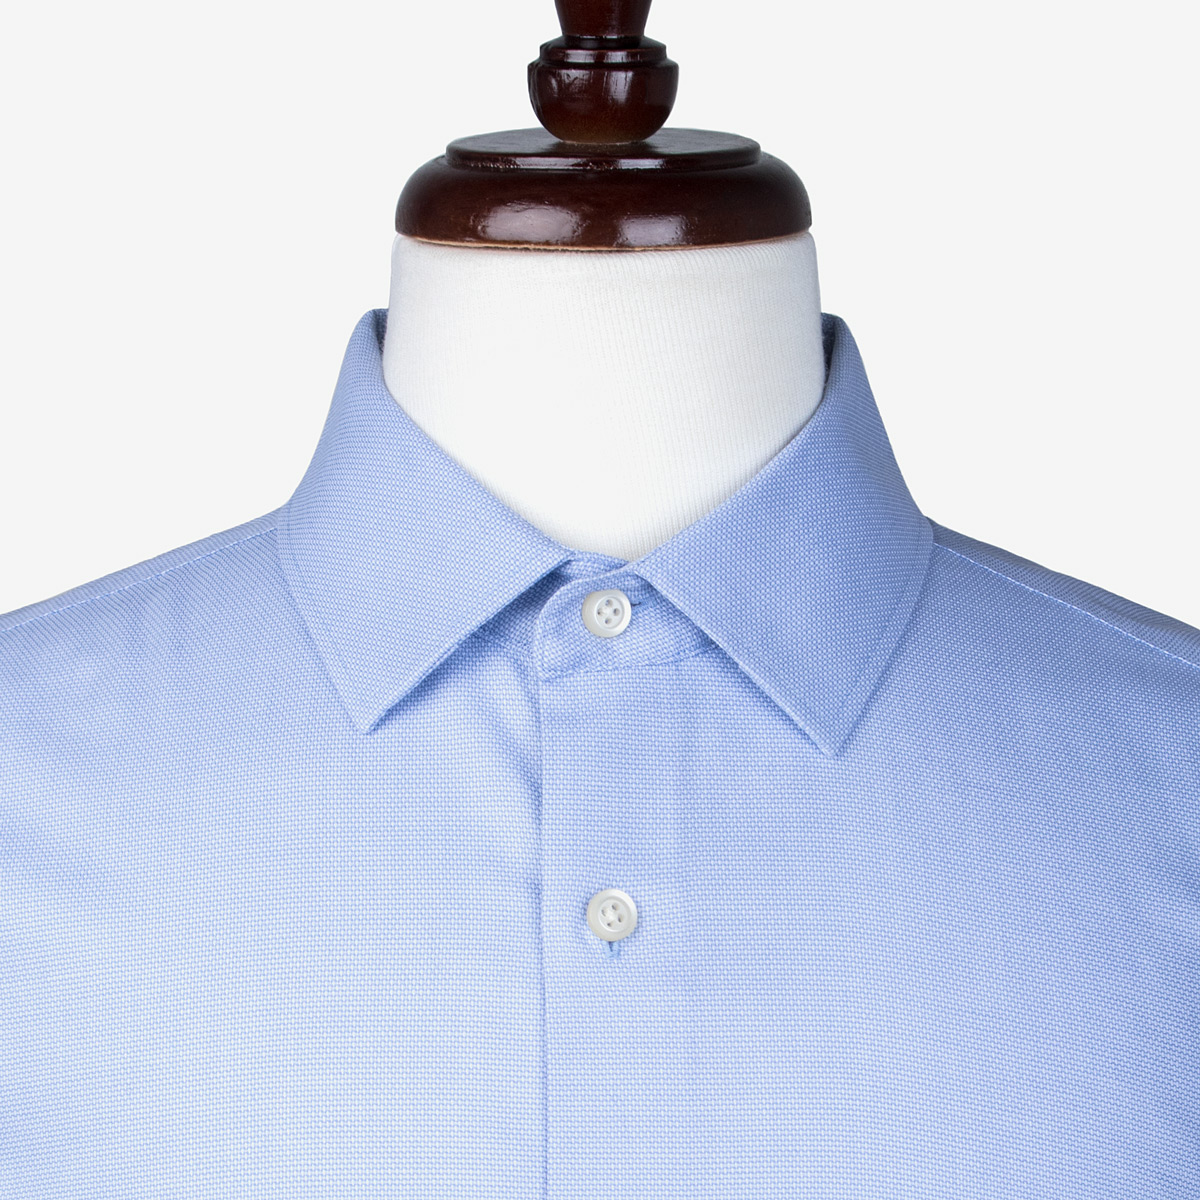 Shirt Collar Guide - A Visual Guide to 6 Common Collars